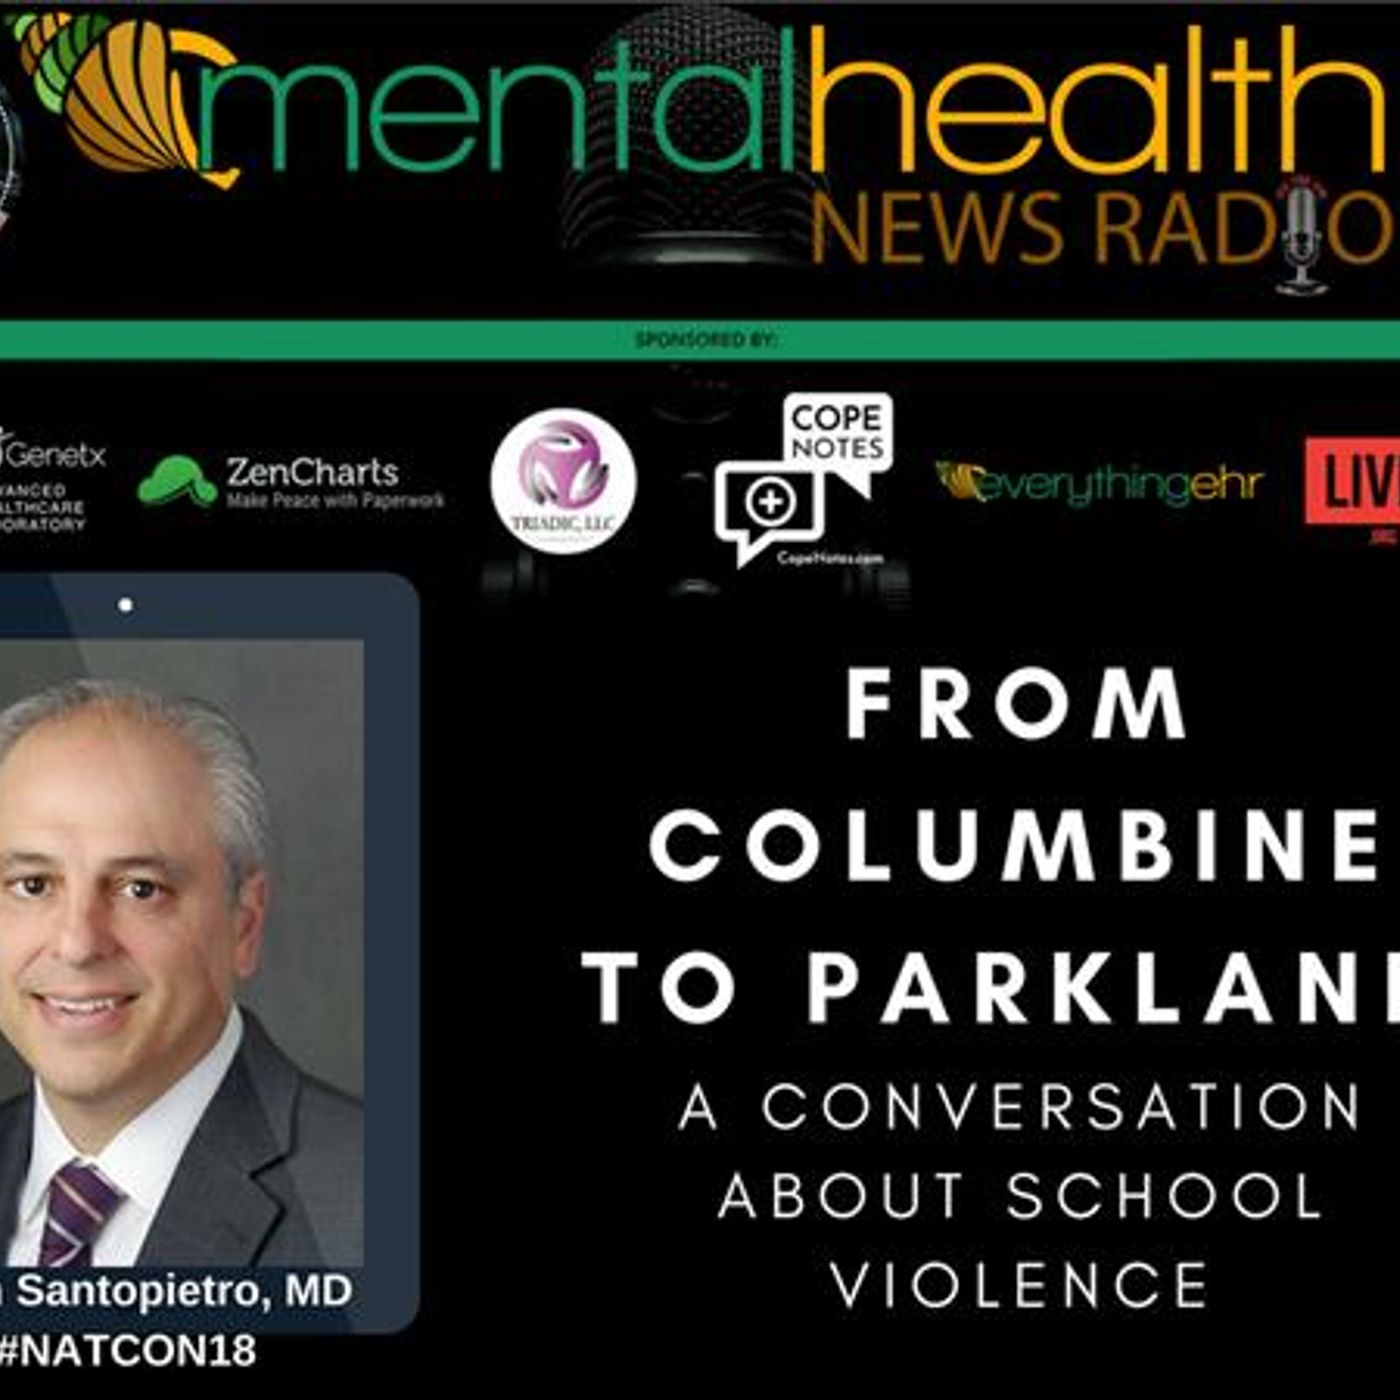 Mental Health News Radio - From Columbine to Parkland: A Conversation About School Violence